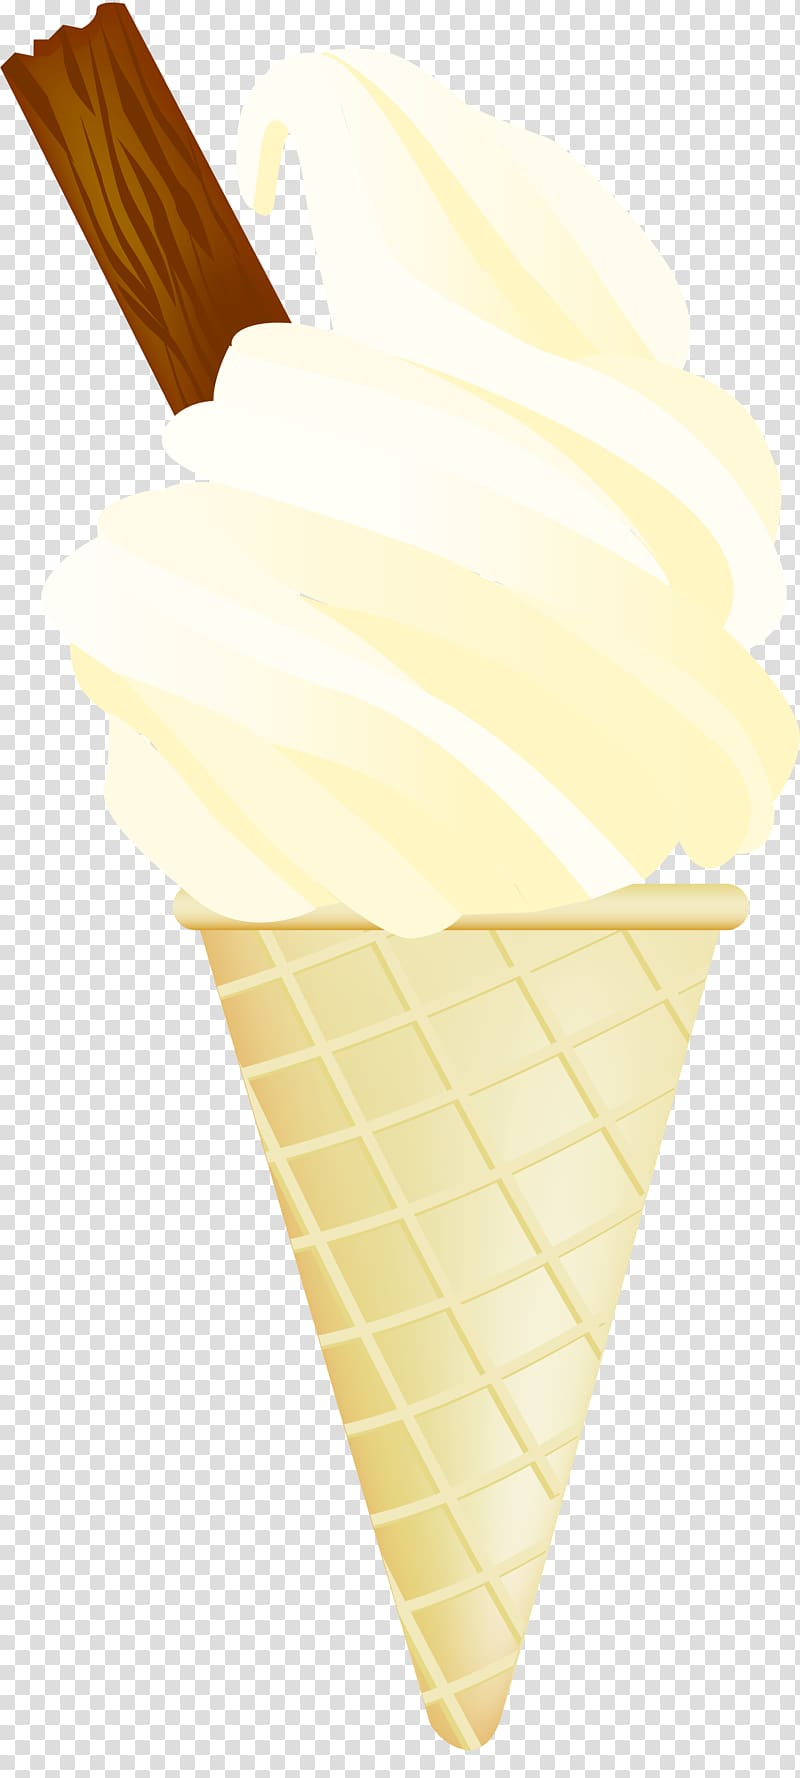 Ice Cream Cones 99 Flake Illustration, Hand painted yellow.